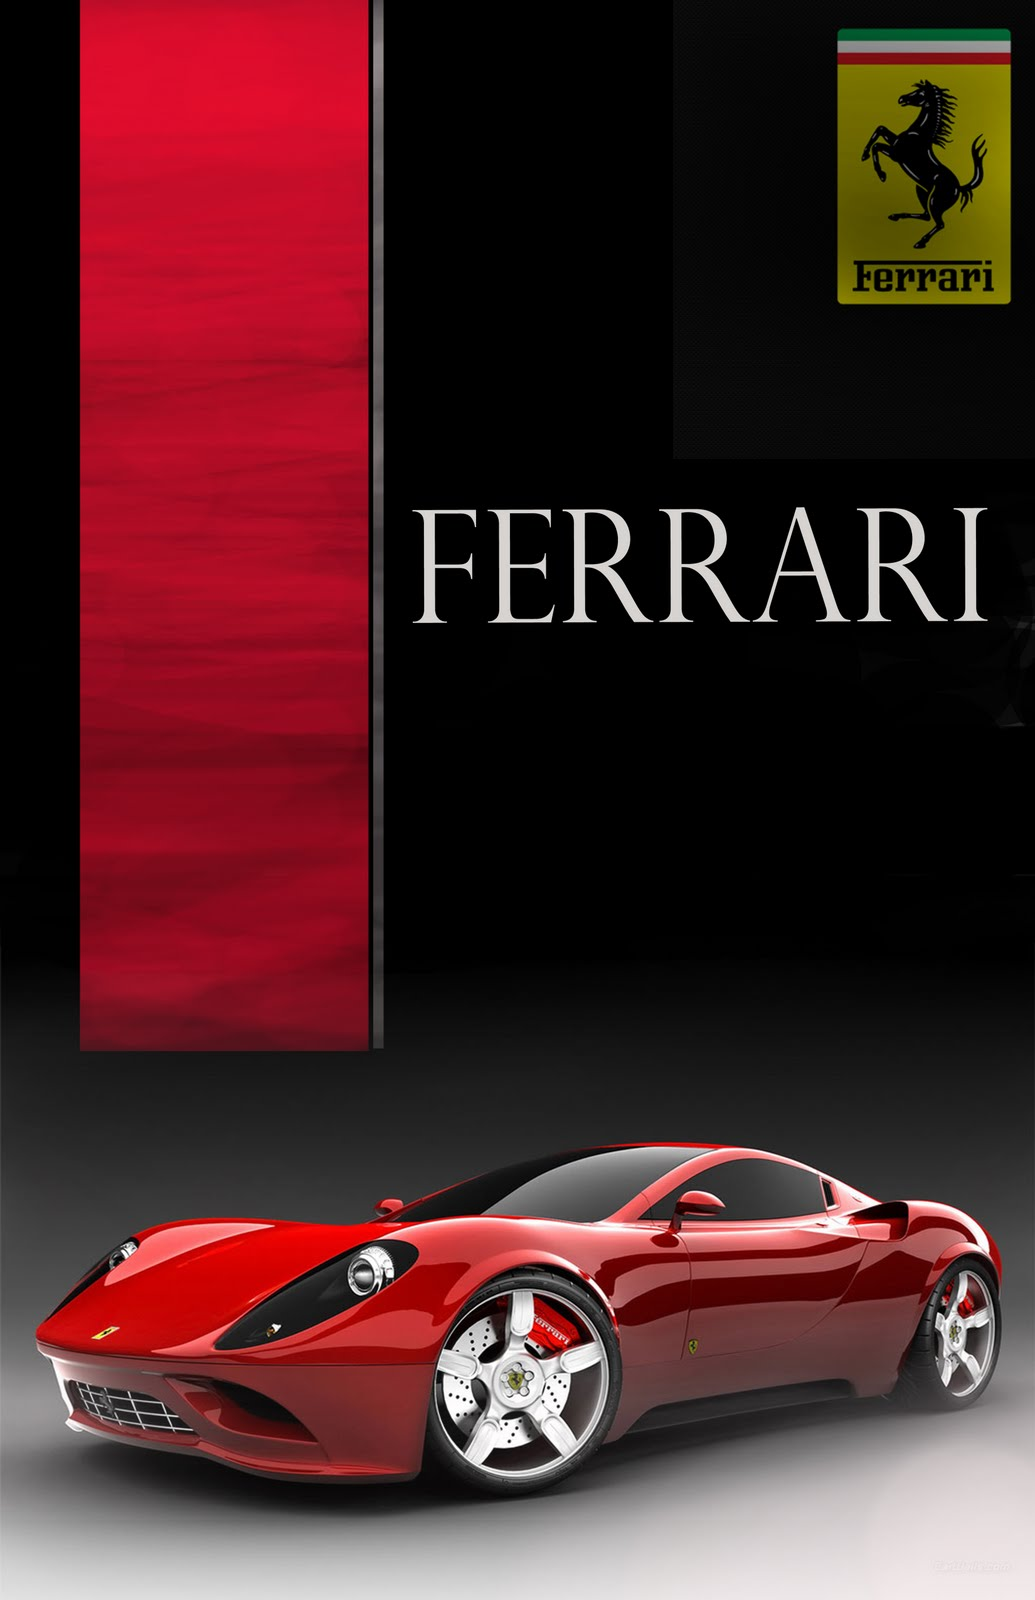 ferrari how much does it the cost buy or rent faith flashes. Cars Review. Best American Auto & Cars Review